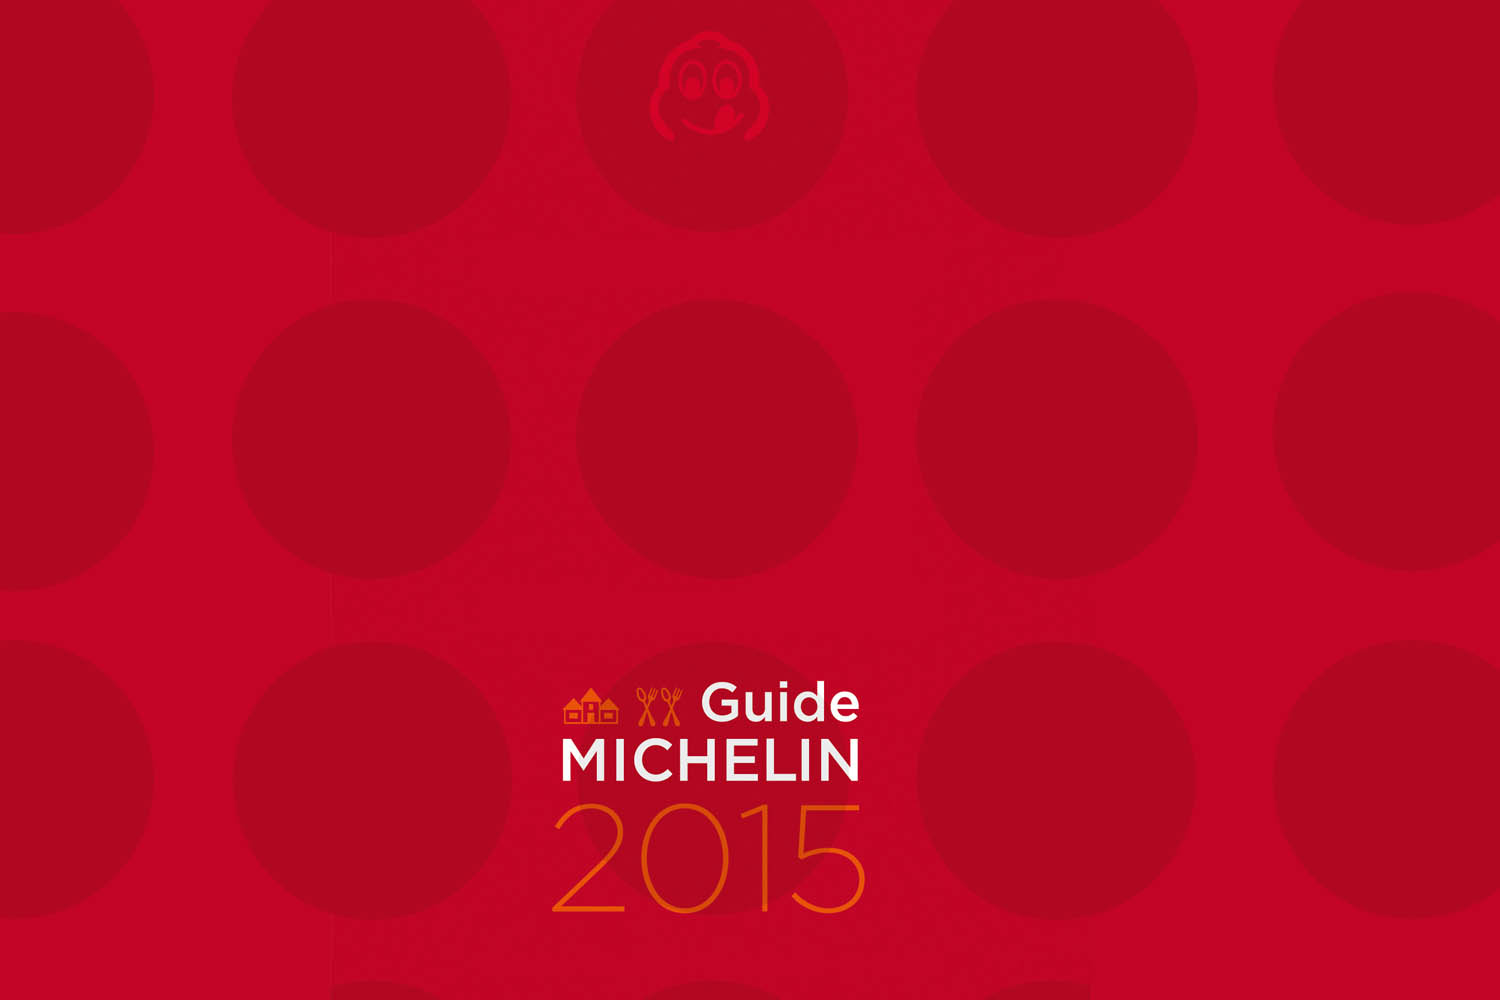 cuisine michelin 2015 Le mail du Michelin qui fait pschitt    Guide Michelin 2015